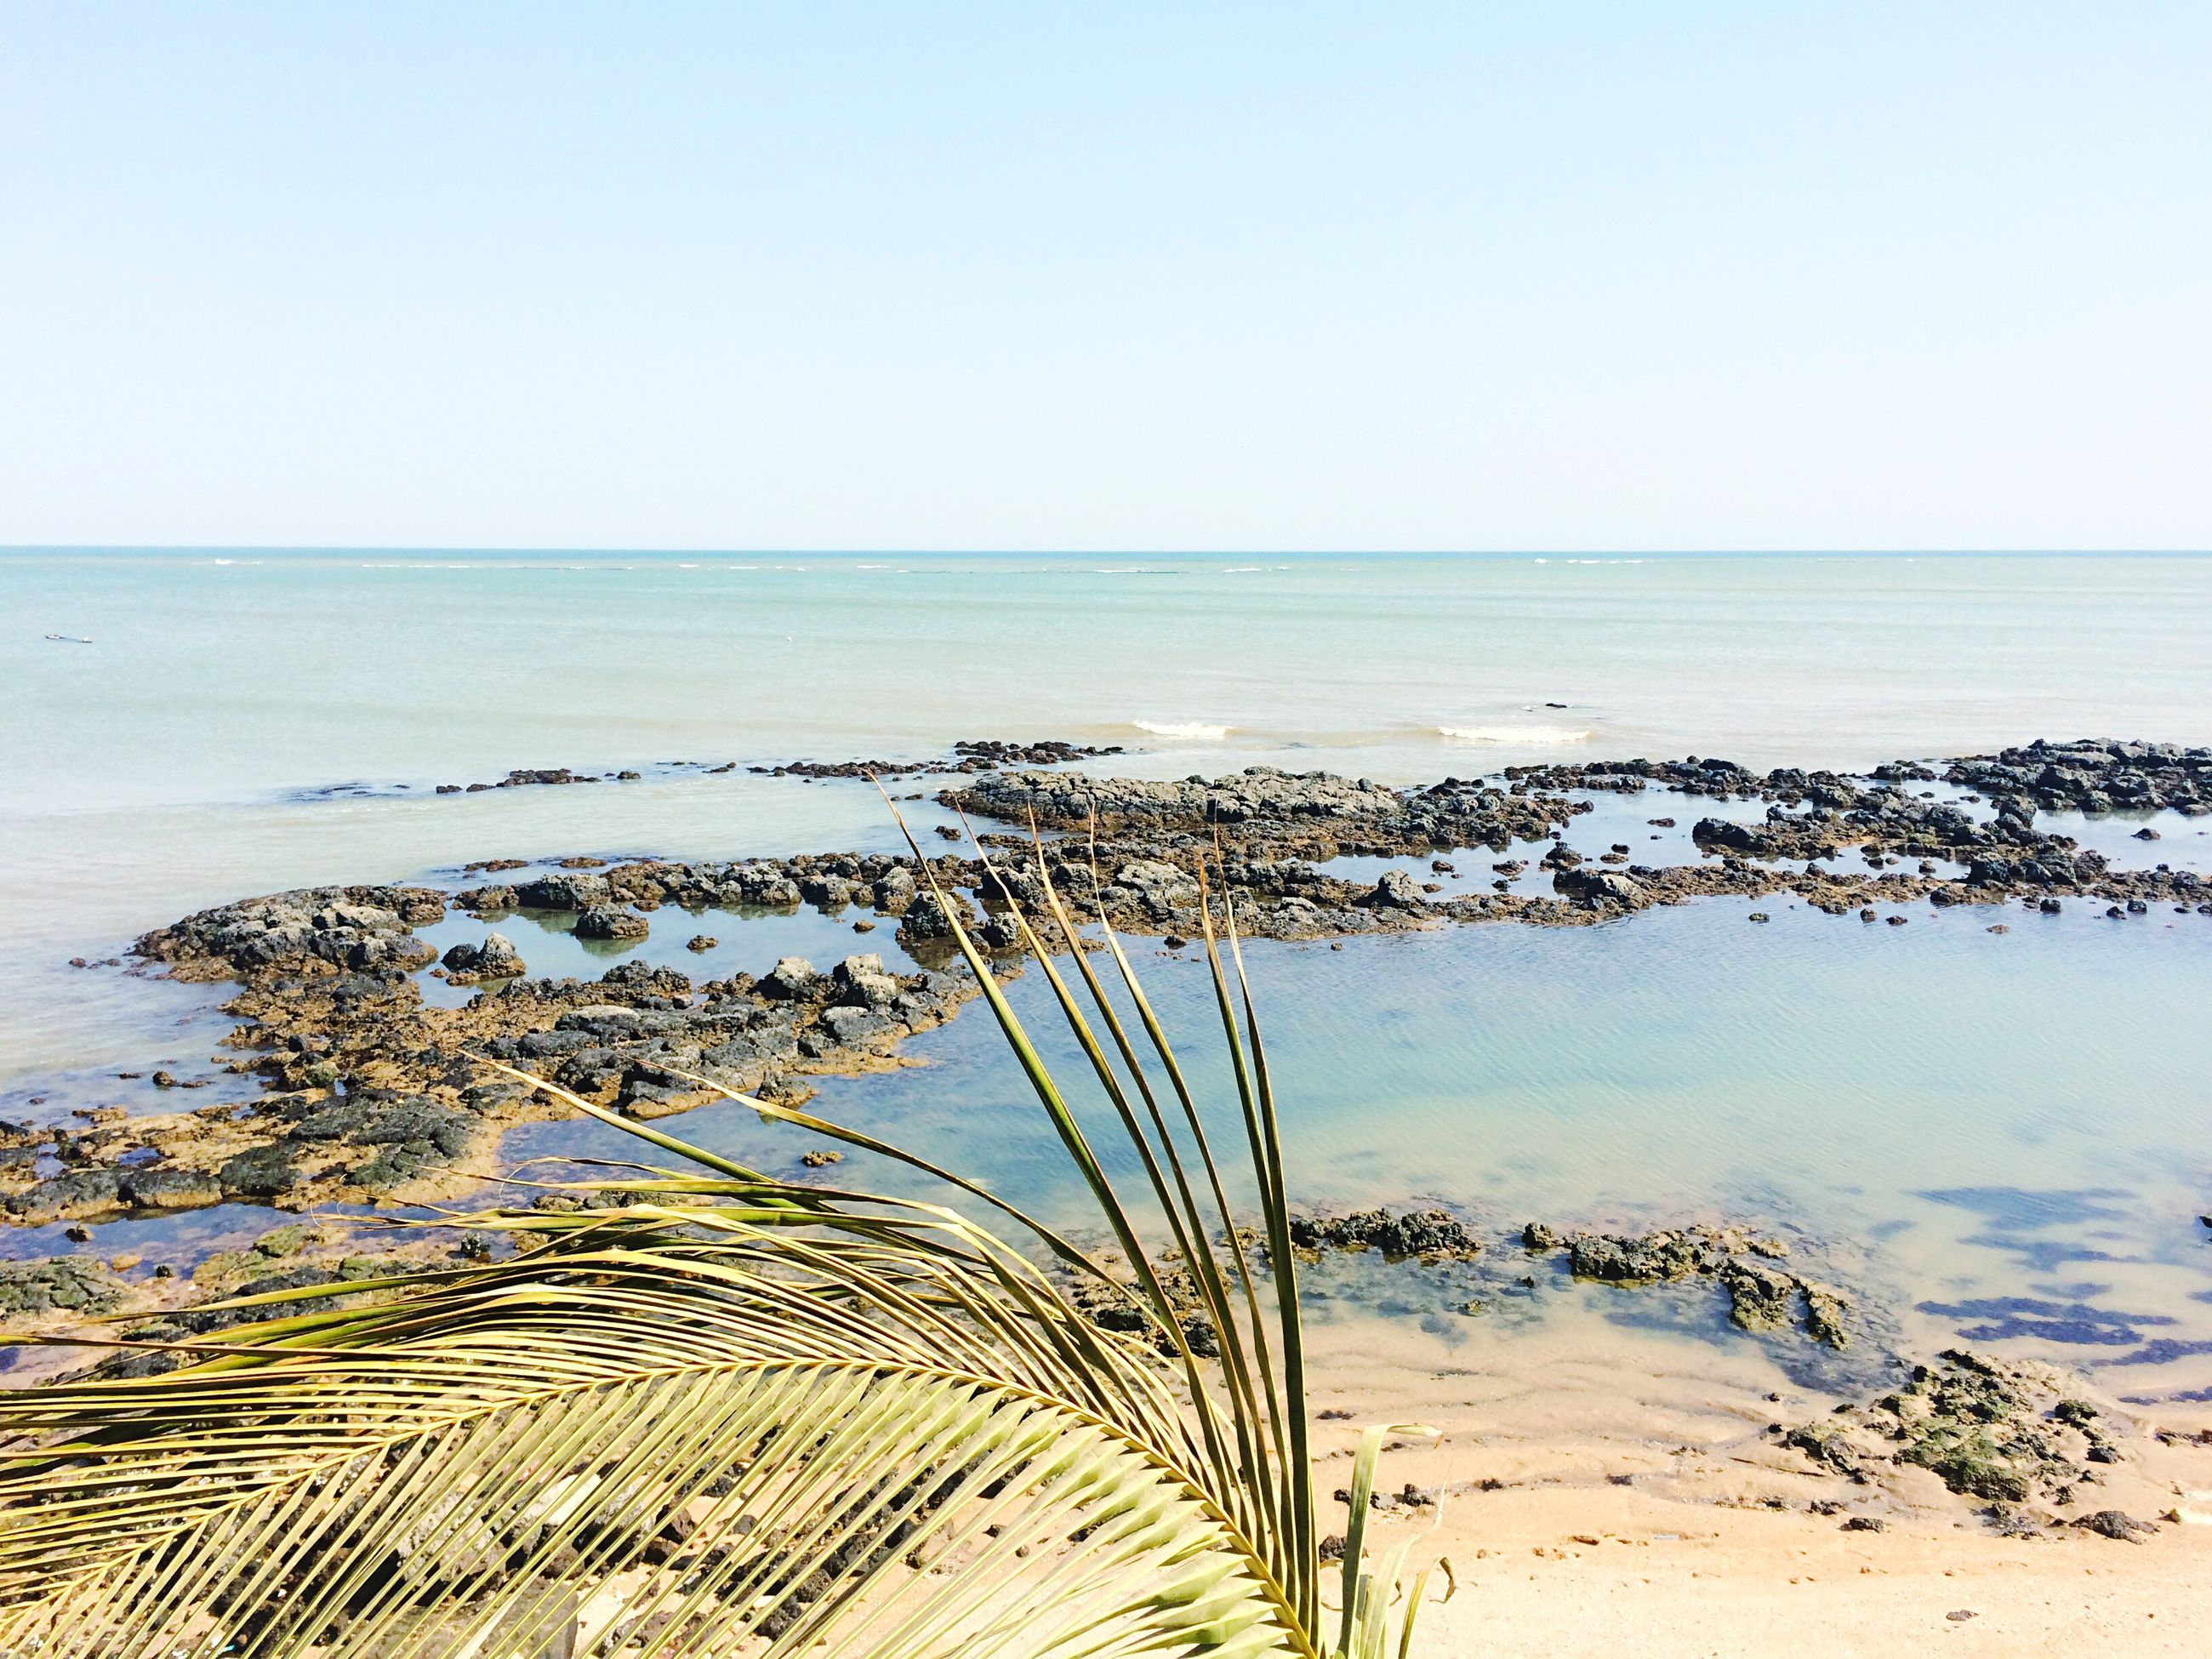 water, sea, horizon over water, clear sky, tranquility, tranquil scene, beach, scenics, beauty in nature, nature, shore, sand, copy space, idyllic, growth, plant, sky, palm tree, remote, outdoors